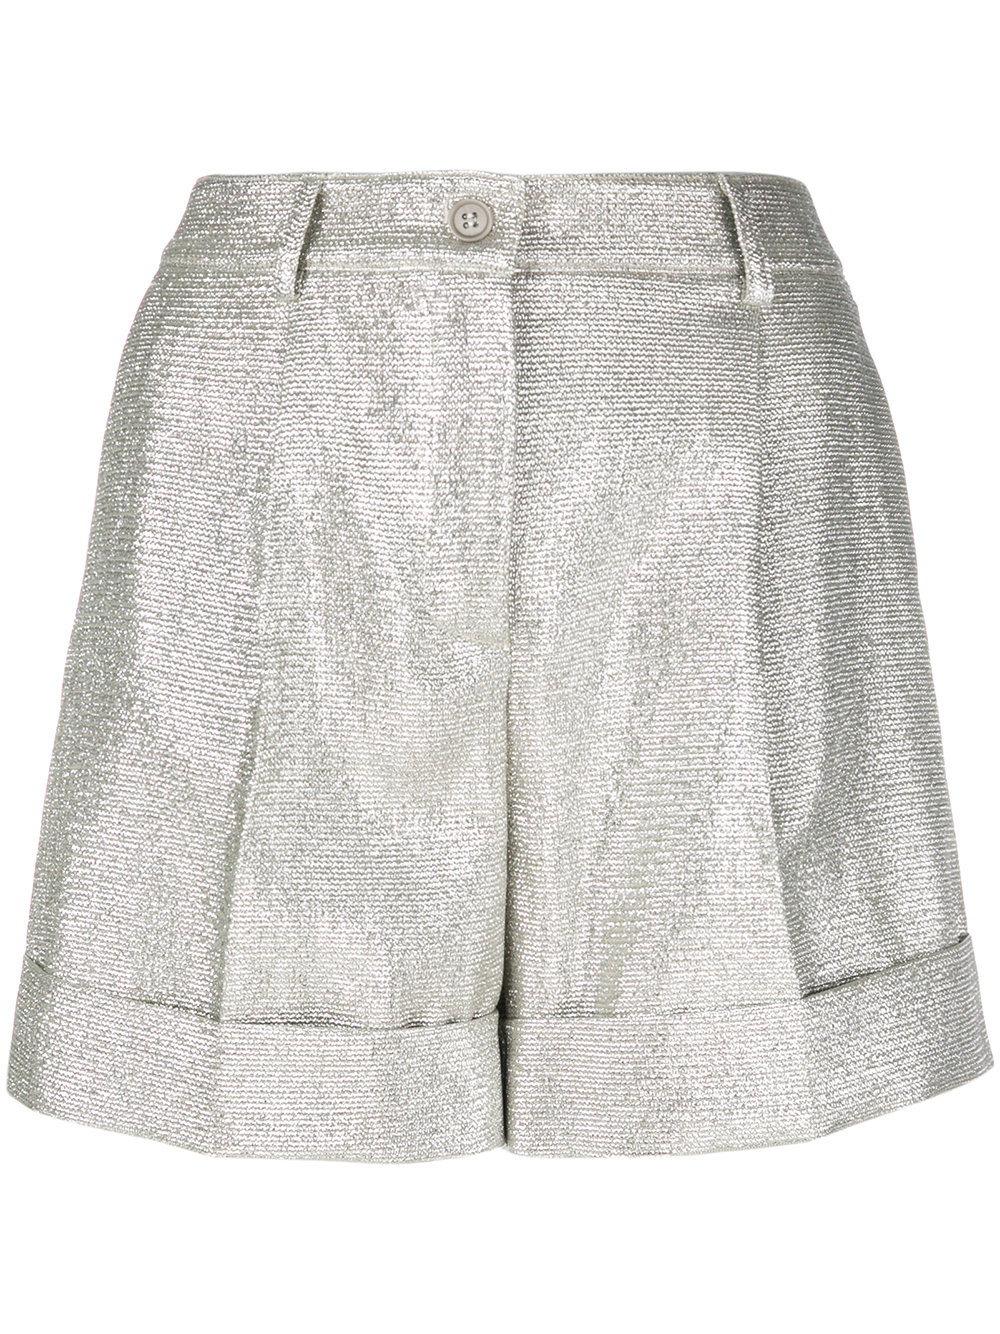 Parosh textured stitch shorts